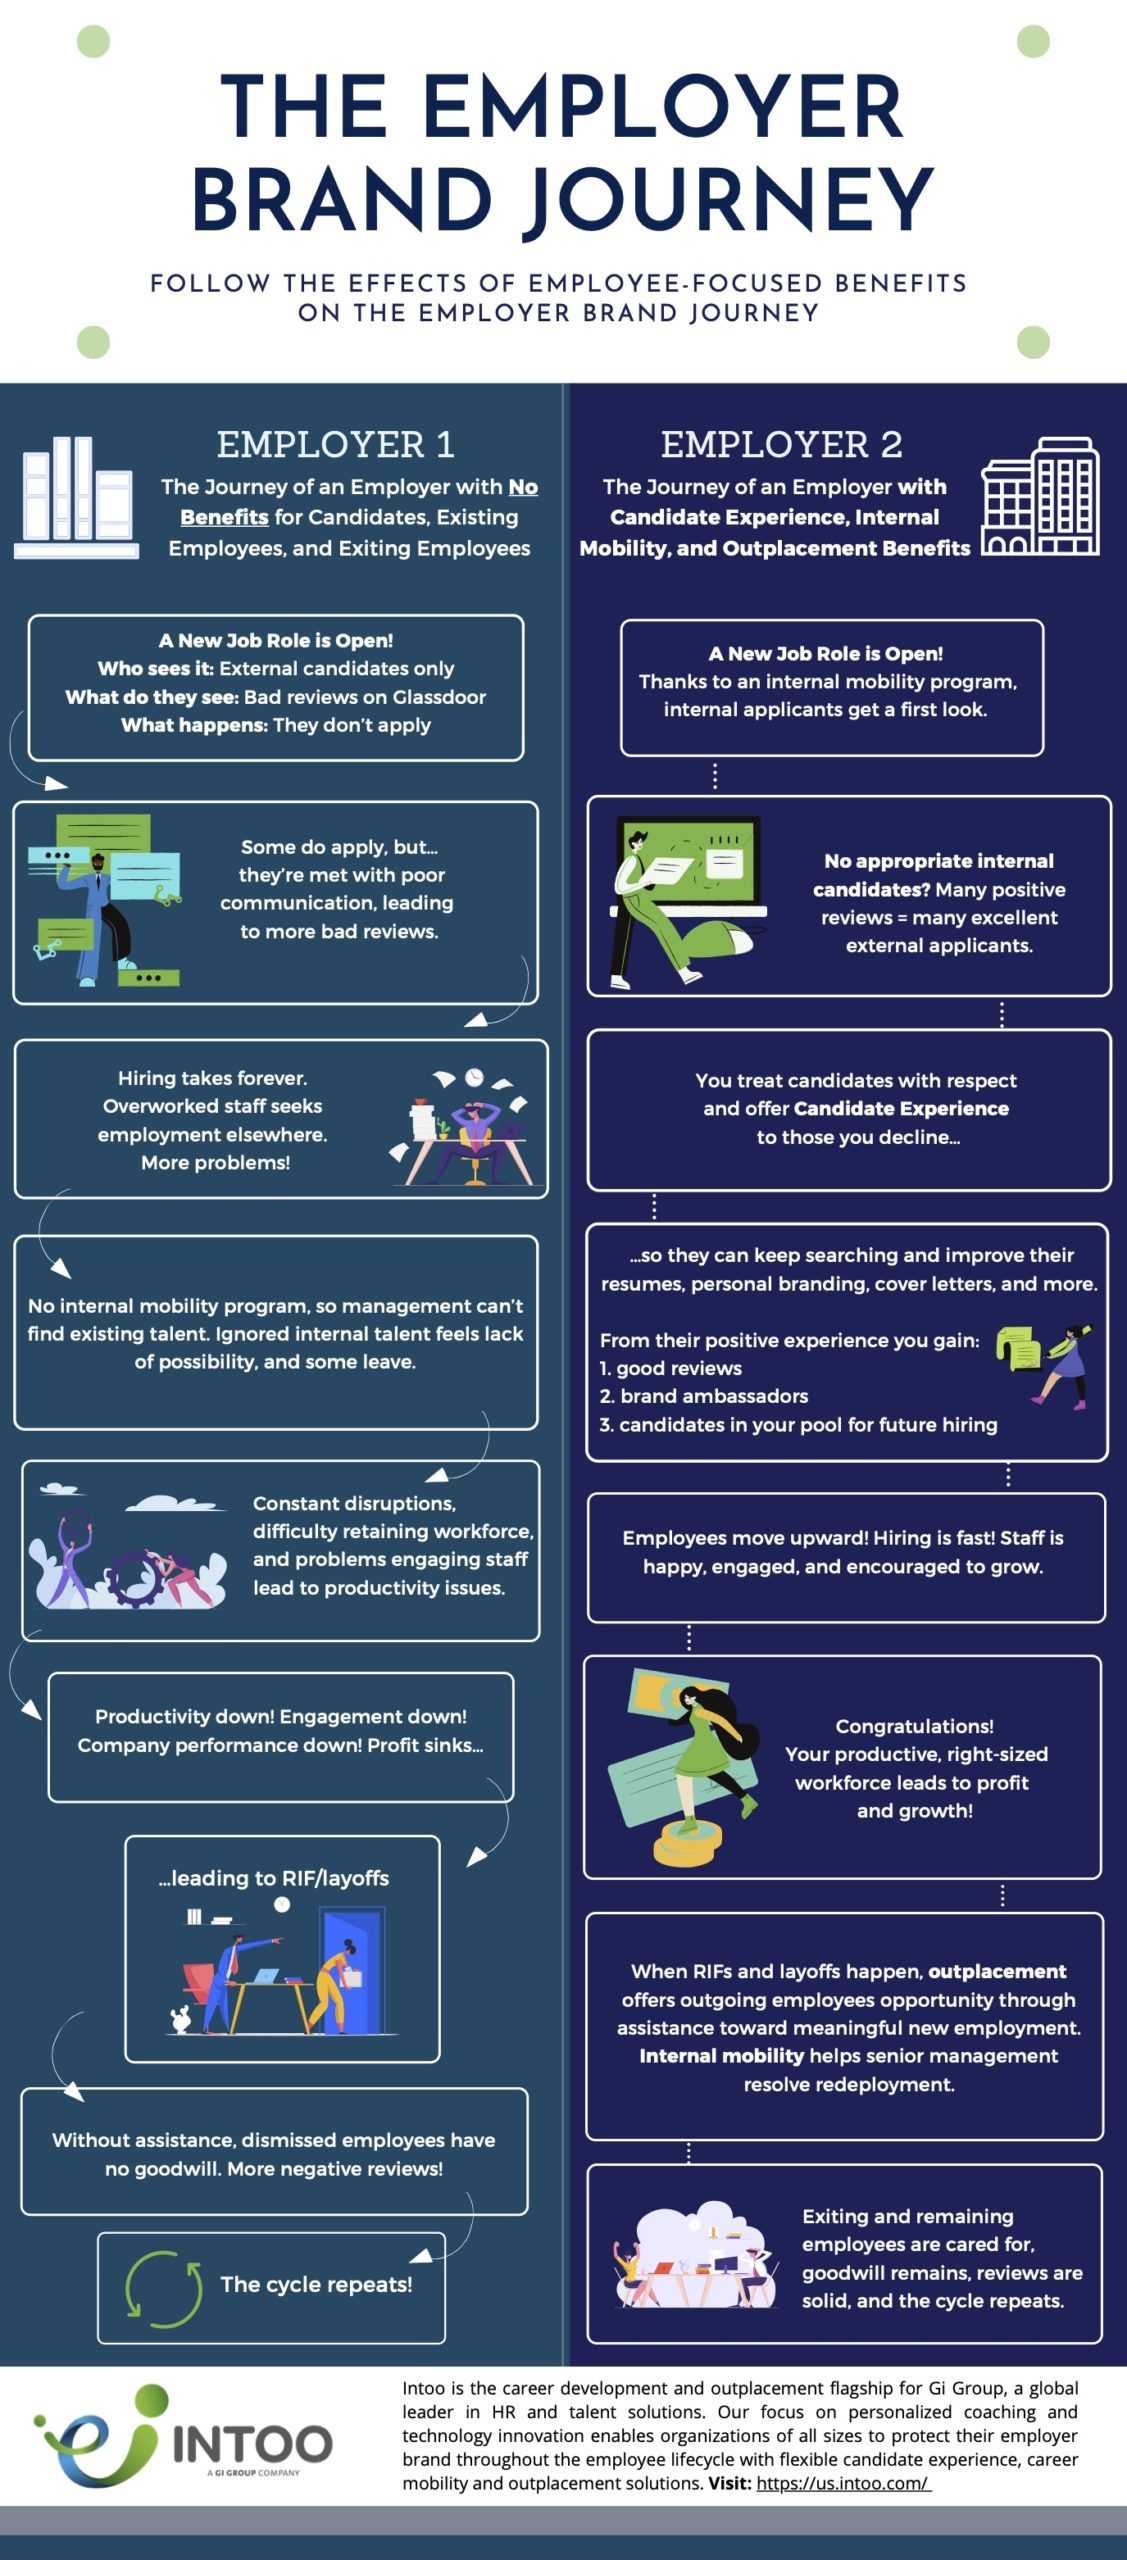 The Employer Brand Journey Infographic shows the effects of employee-focused benefits on the employer brand journey